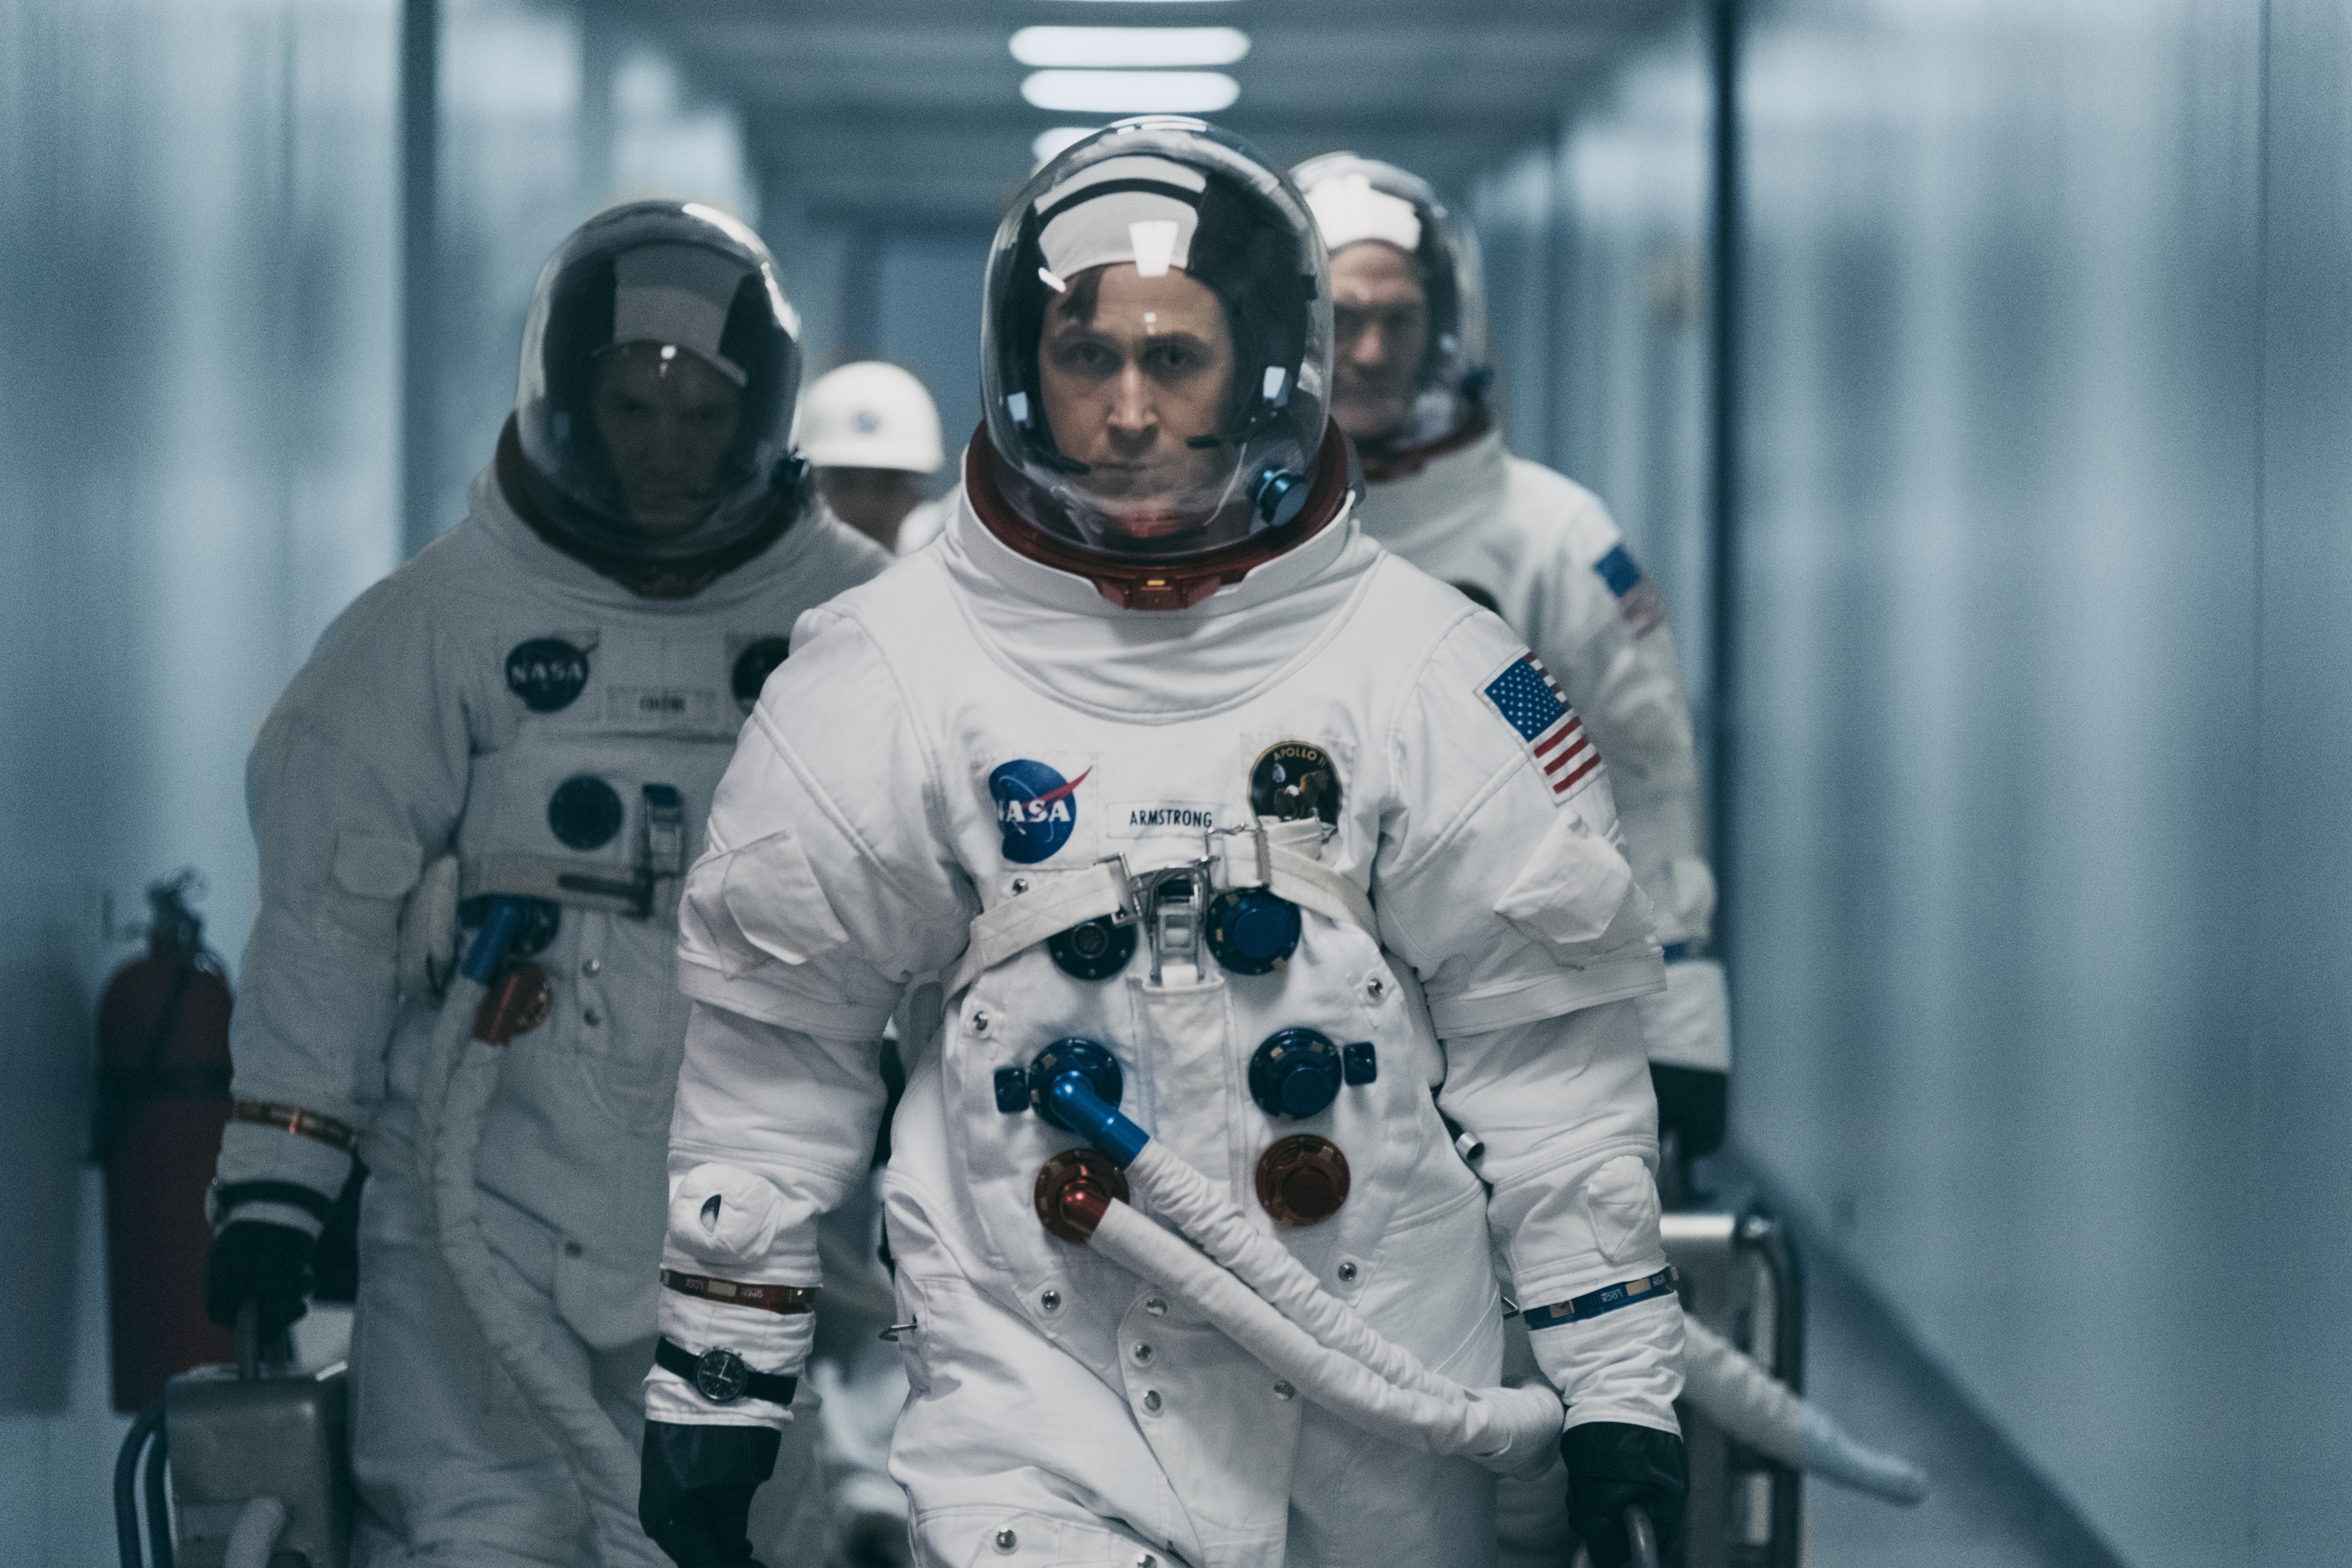 The Neil Armstrong movie appears to be flopping because of Marco Rubio. The truth is more complicated.